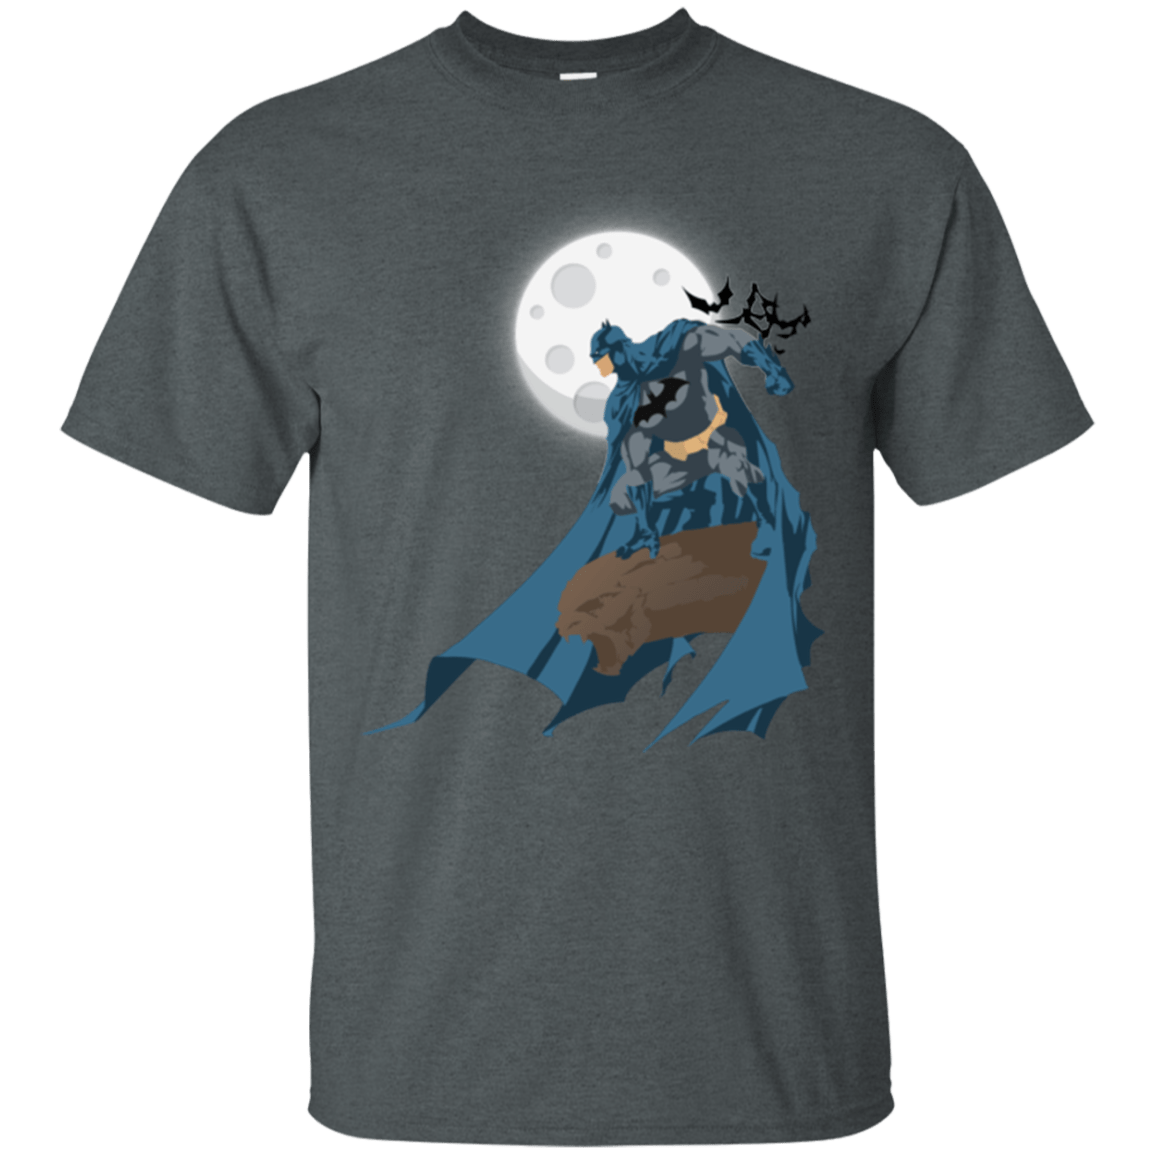 T-Shirts Dark Heather / Small Batman T-Shirt